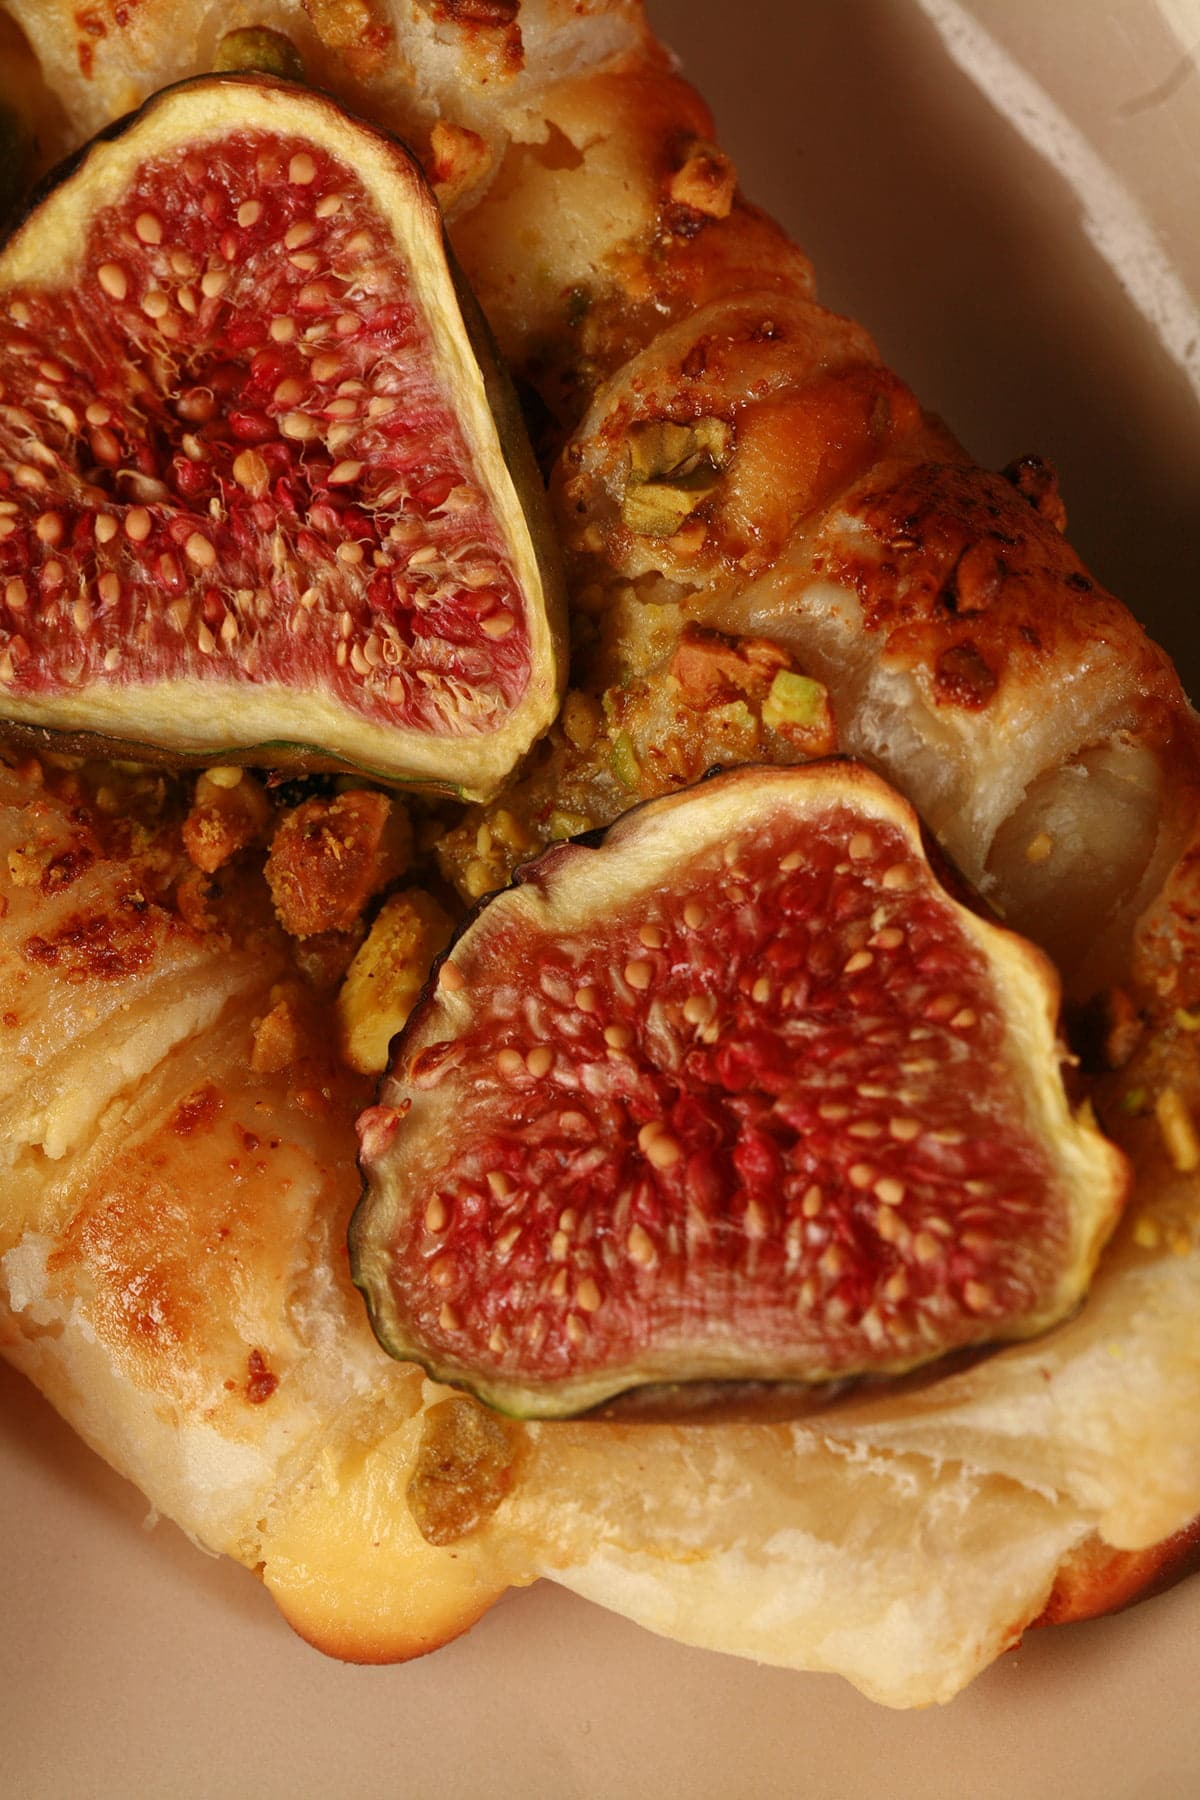 A close up view of two fig, honey, and goat cheese strudel pastries on a tan coloured plate.